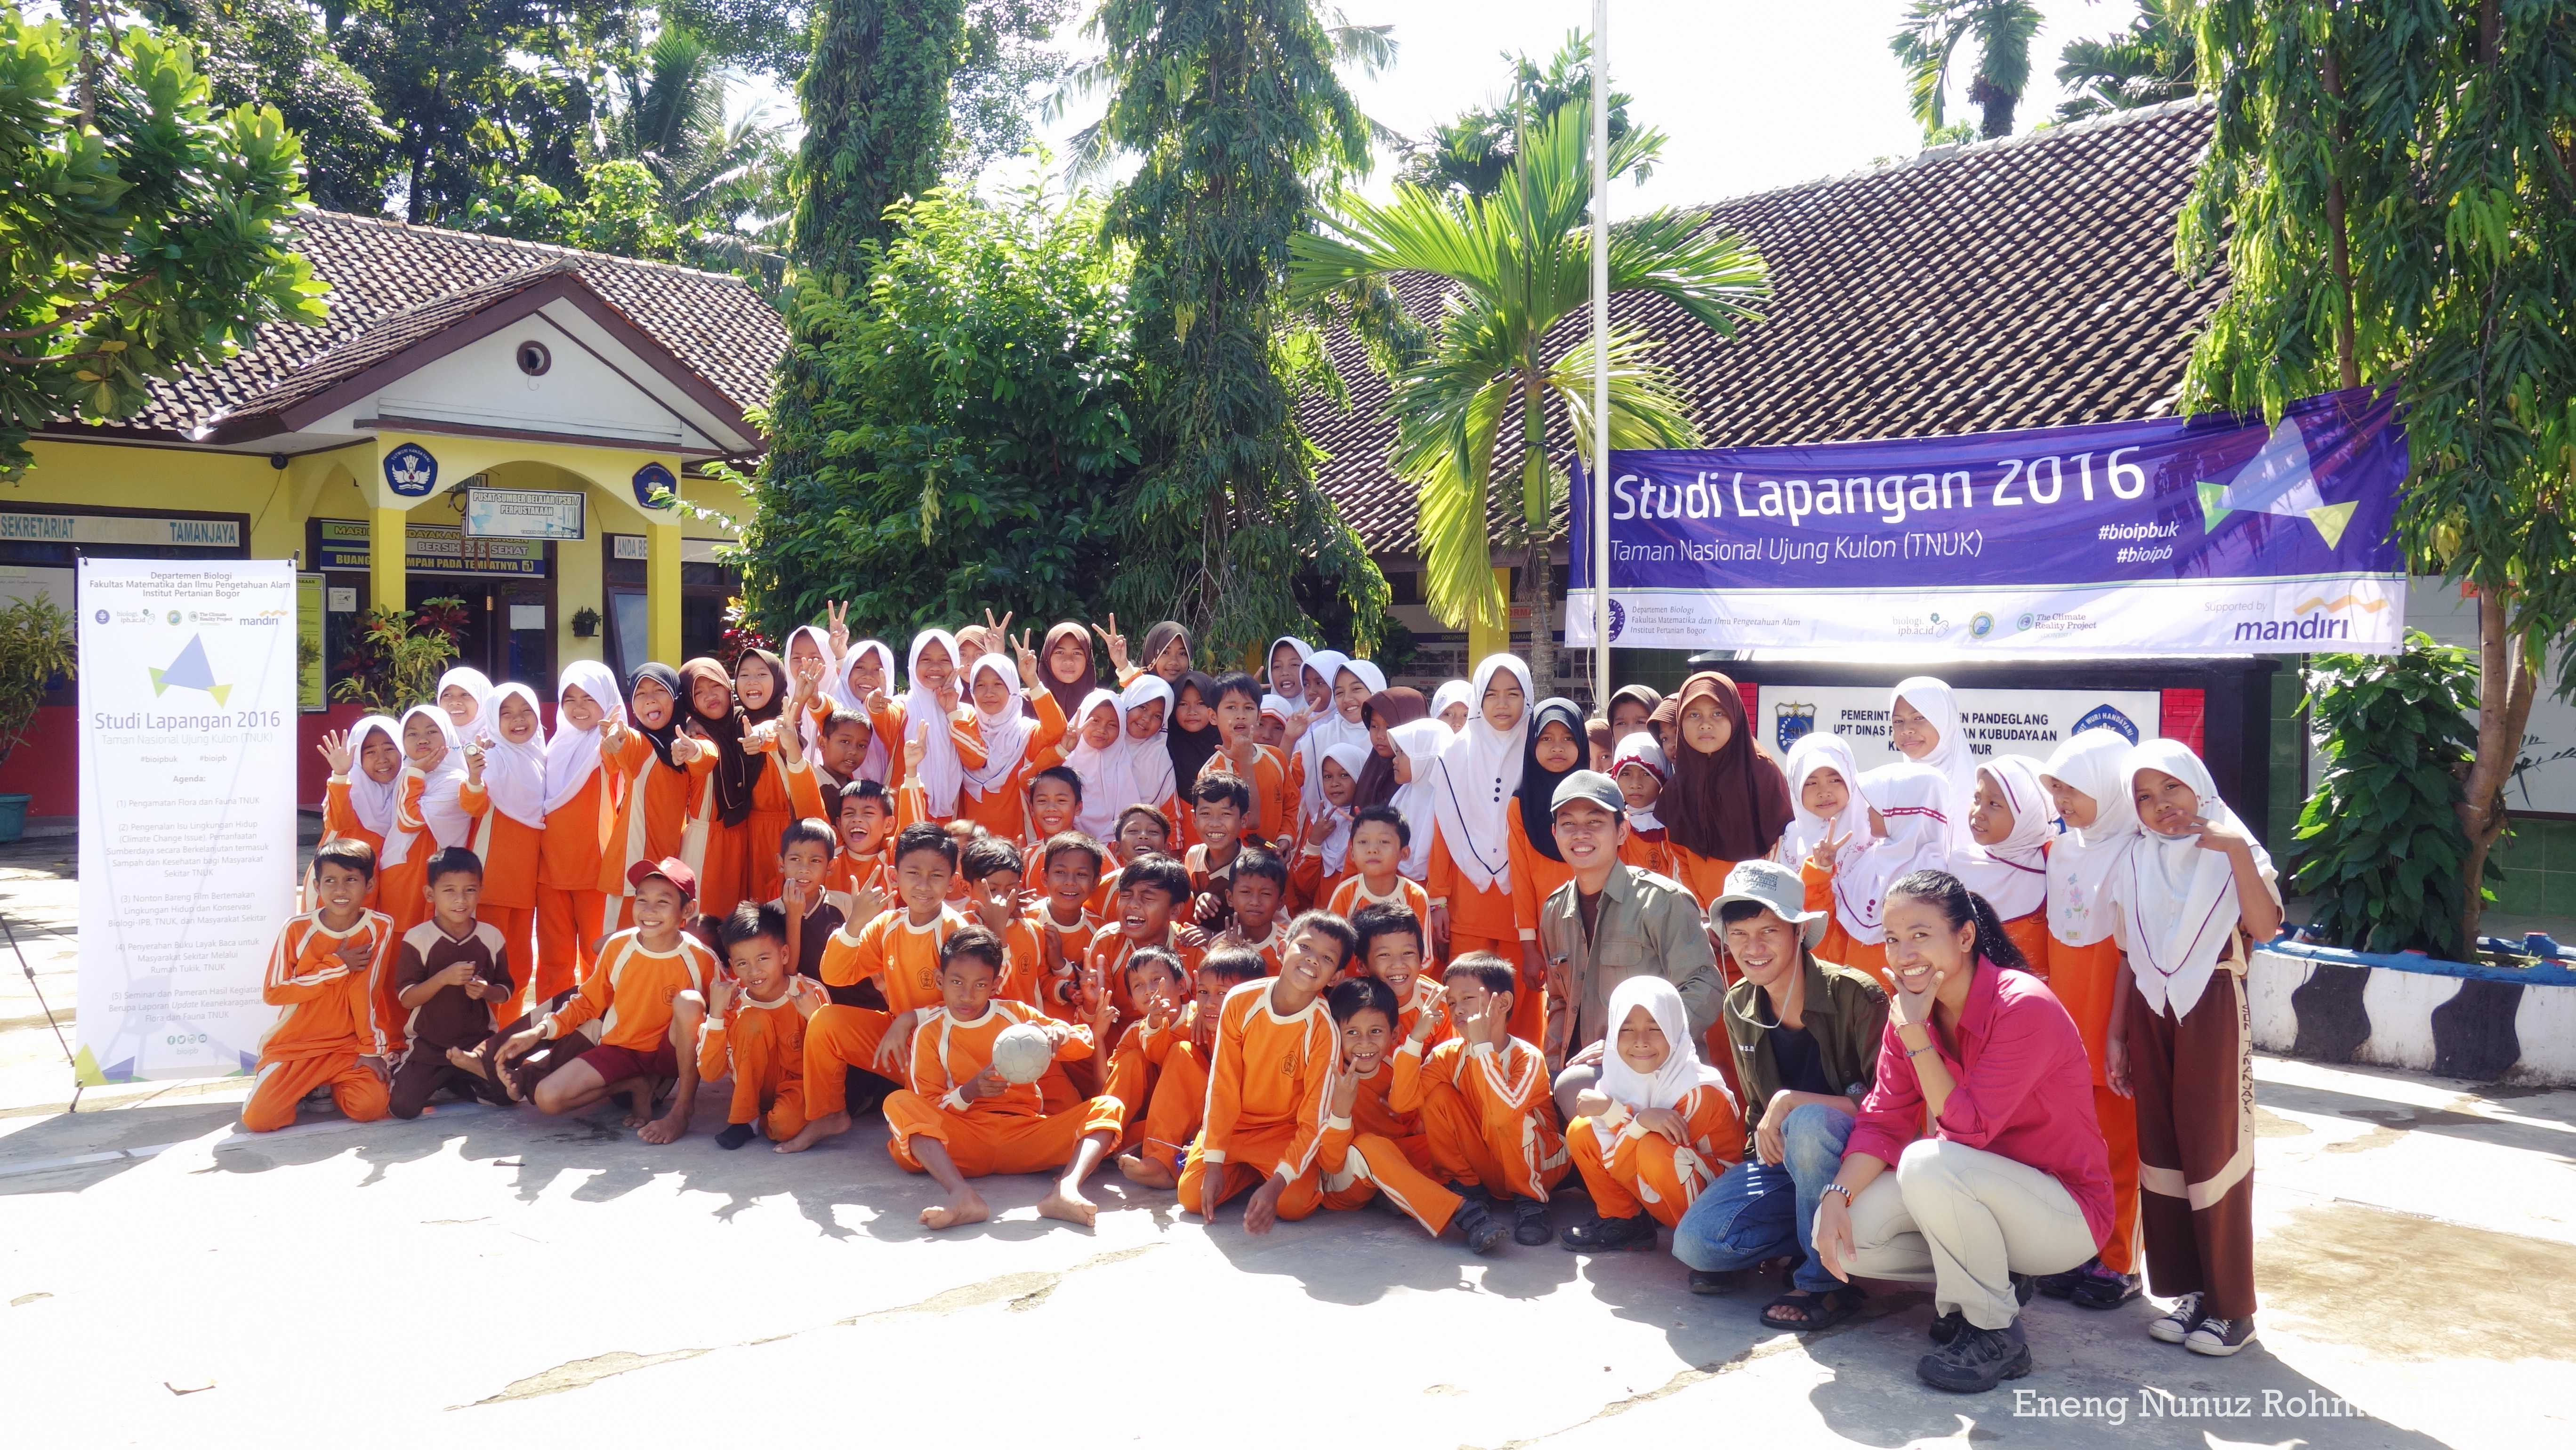 SL Story (1): Let's Play with Elementary School Students